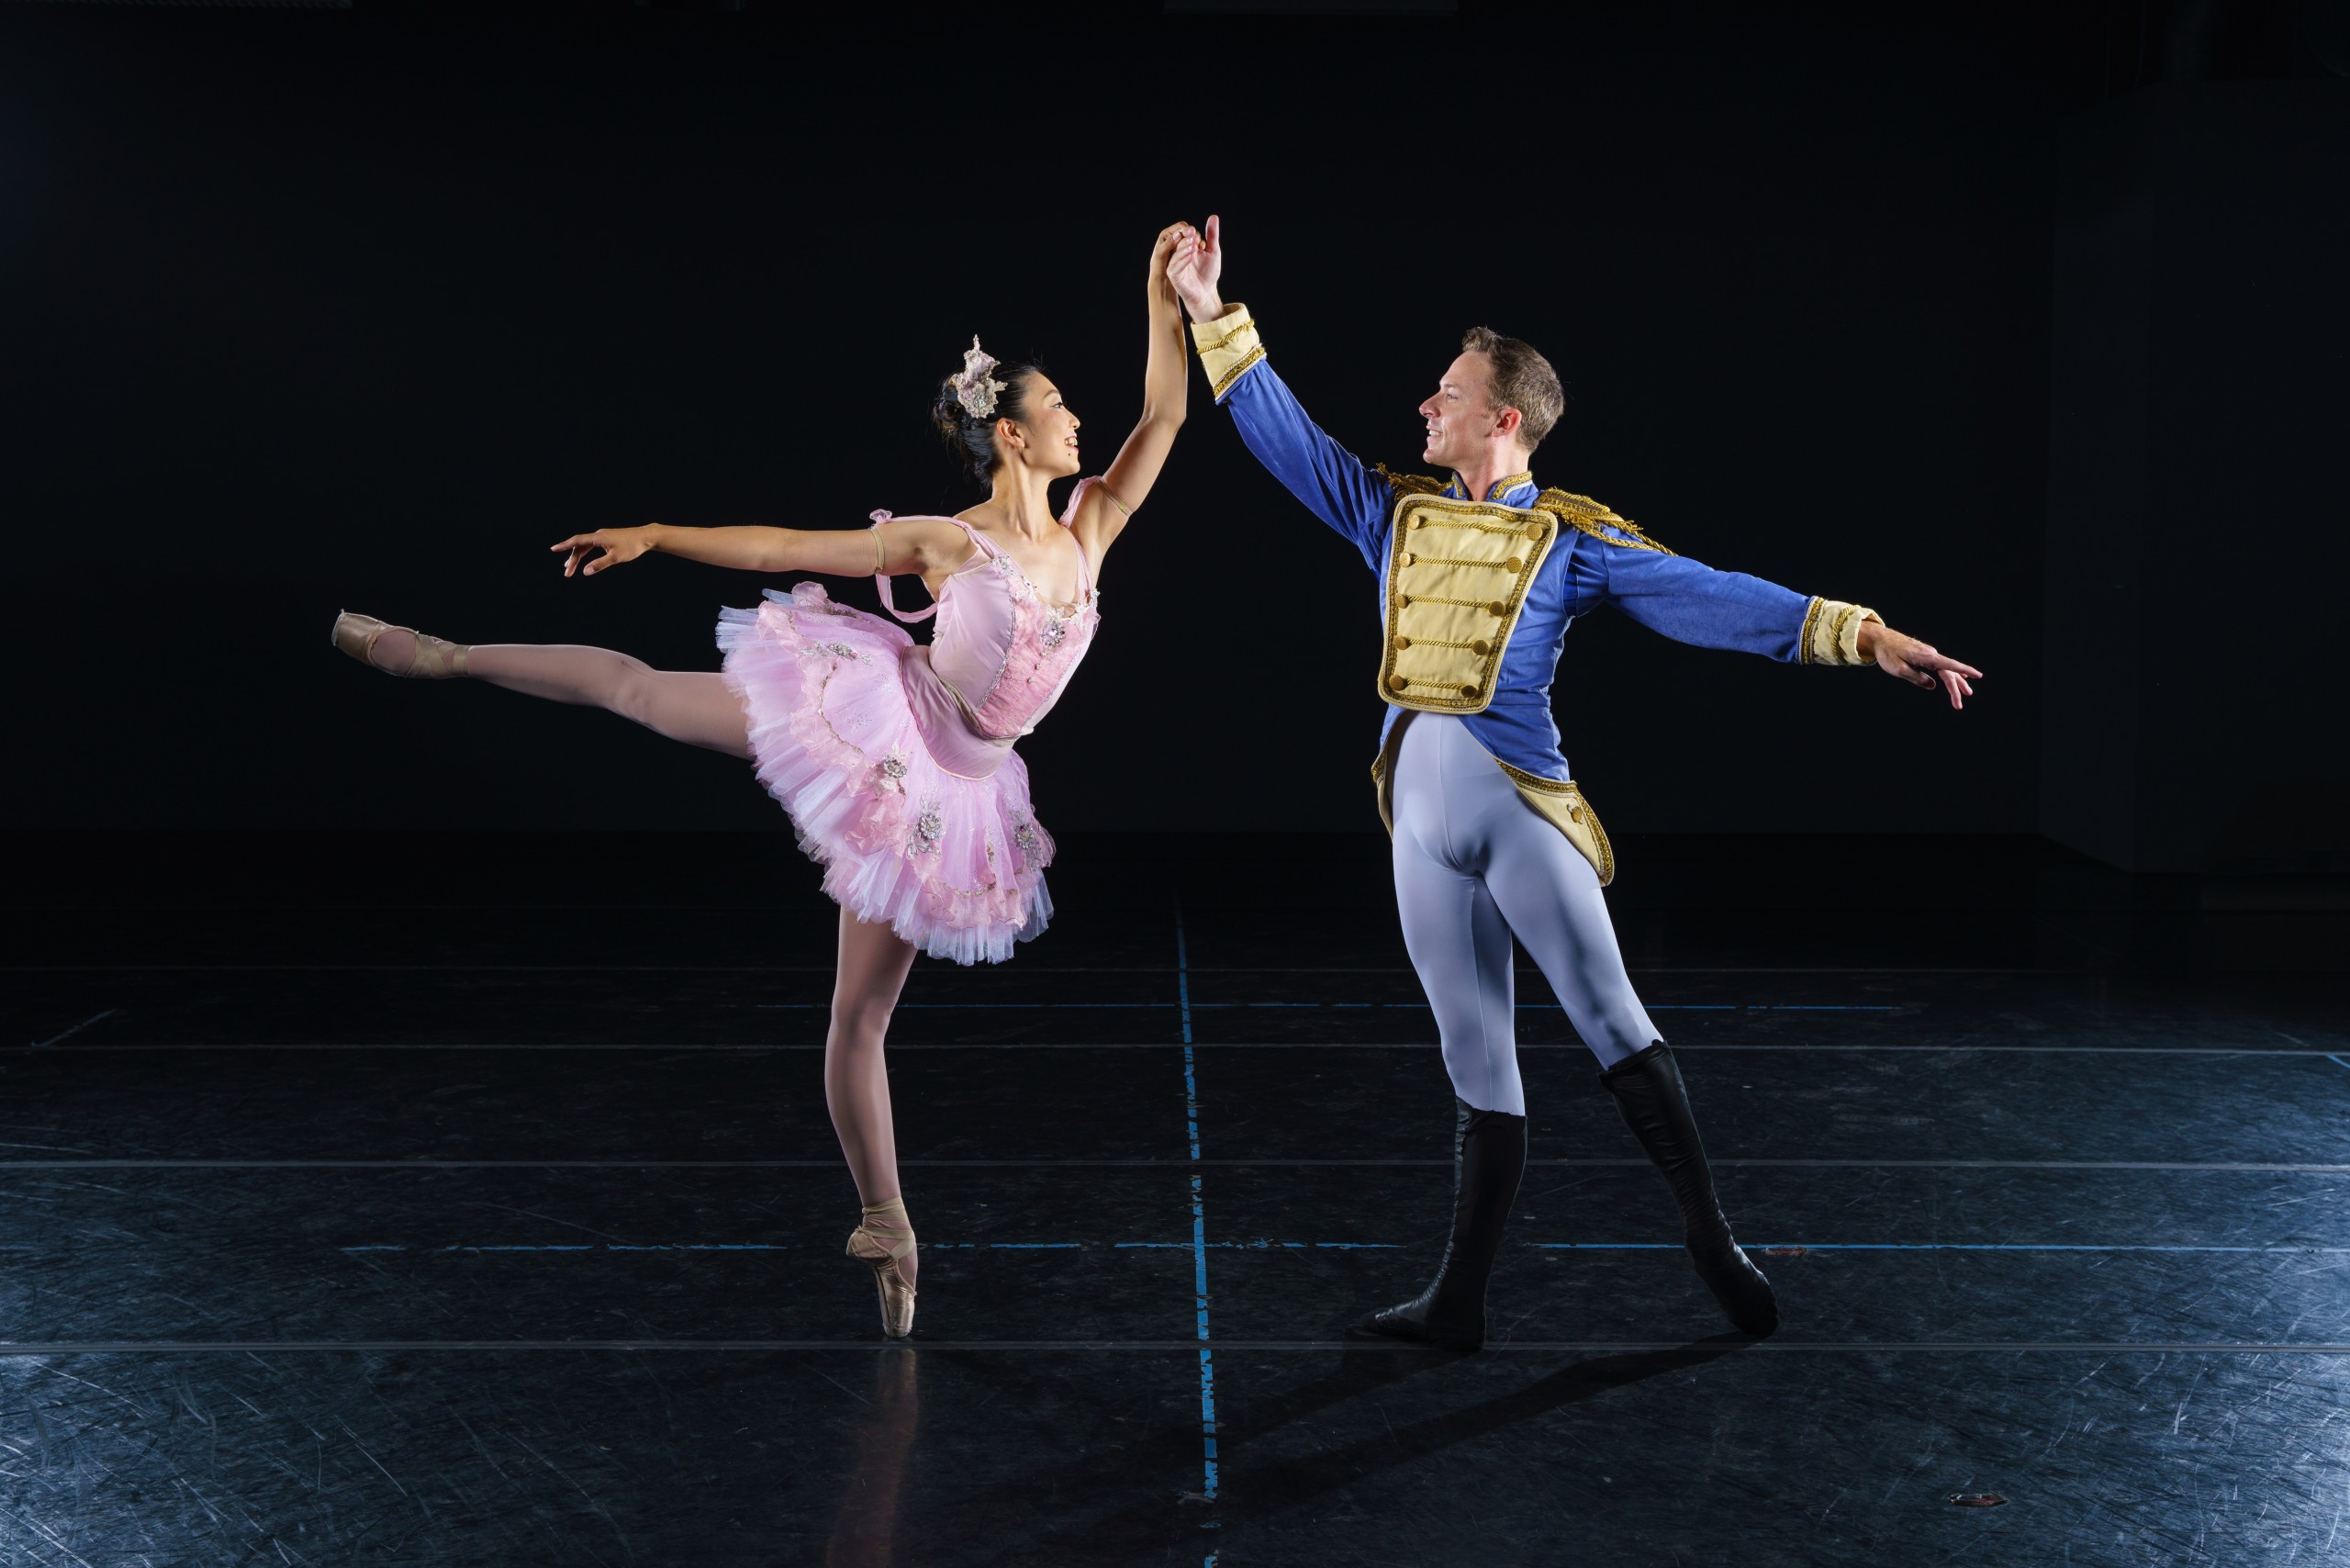 Photo of two ballet dancers in costume